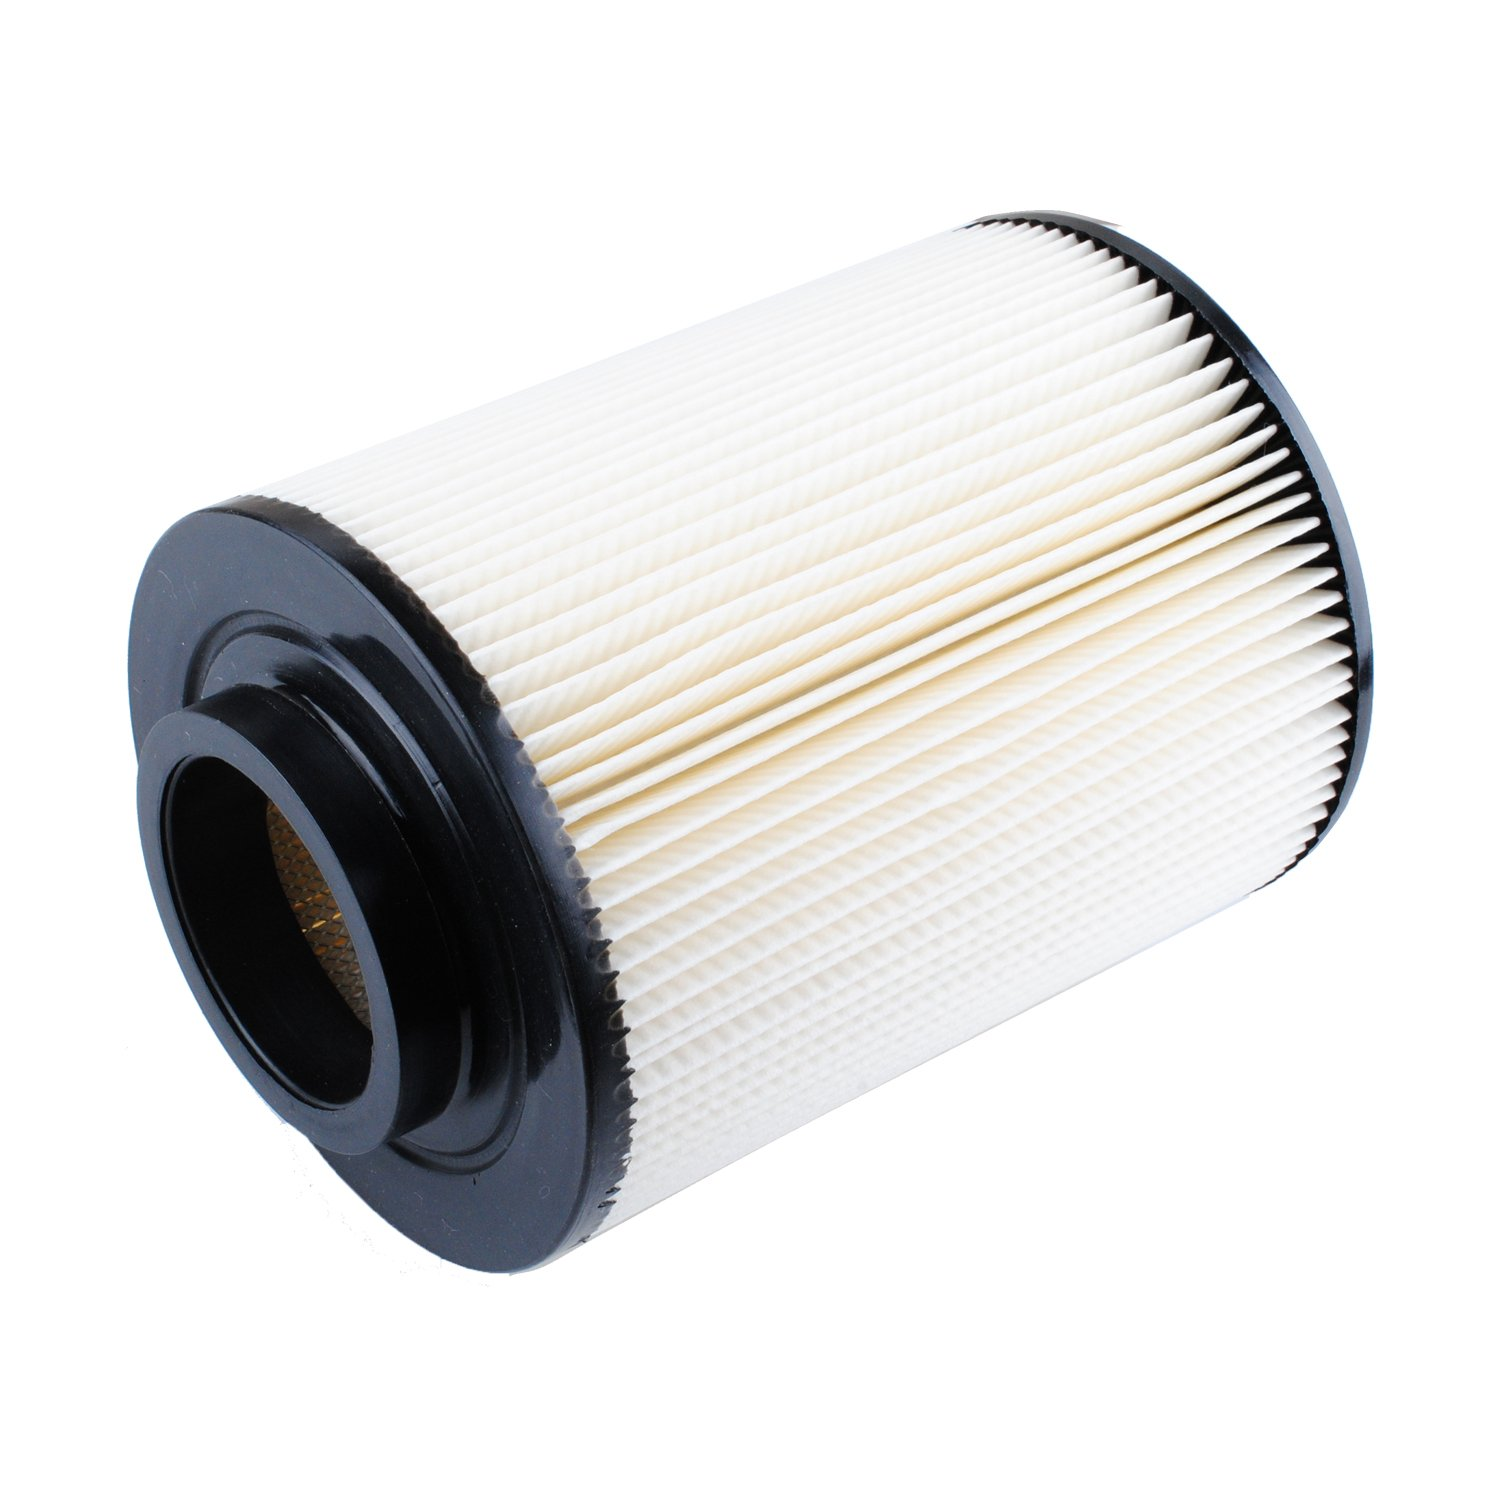 RZR 800 Air Filter 1240482 Replacement for Polaris (2008-2014) UTV by Wadoy by Wadoy